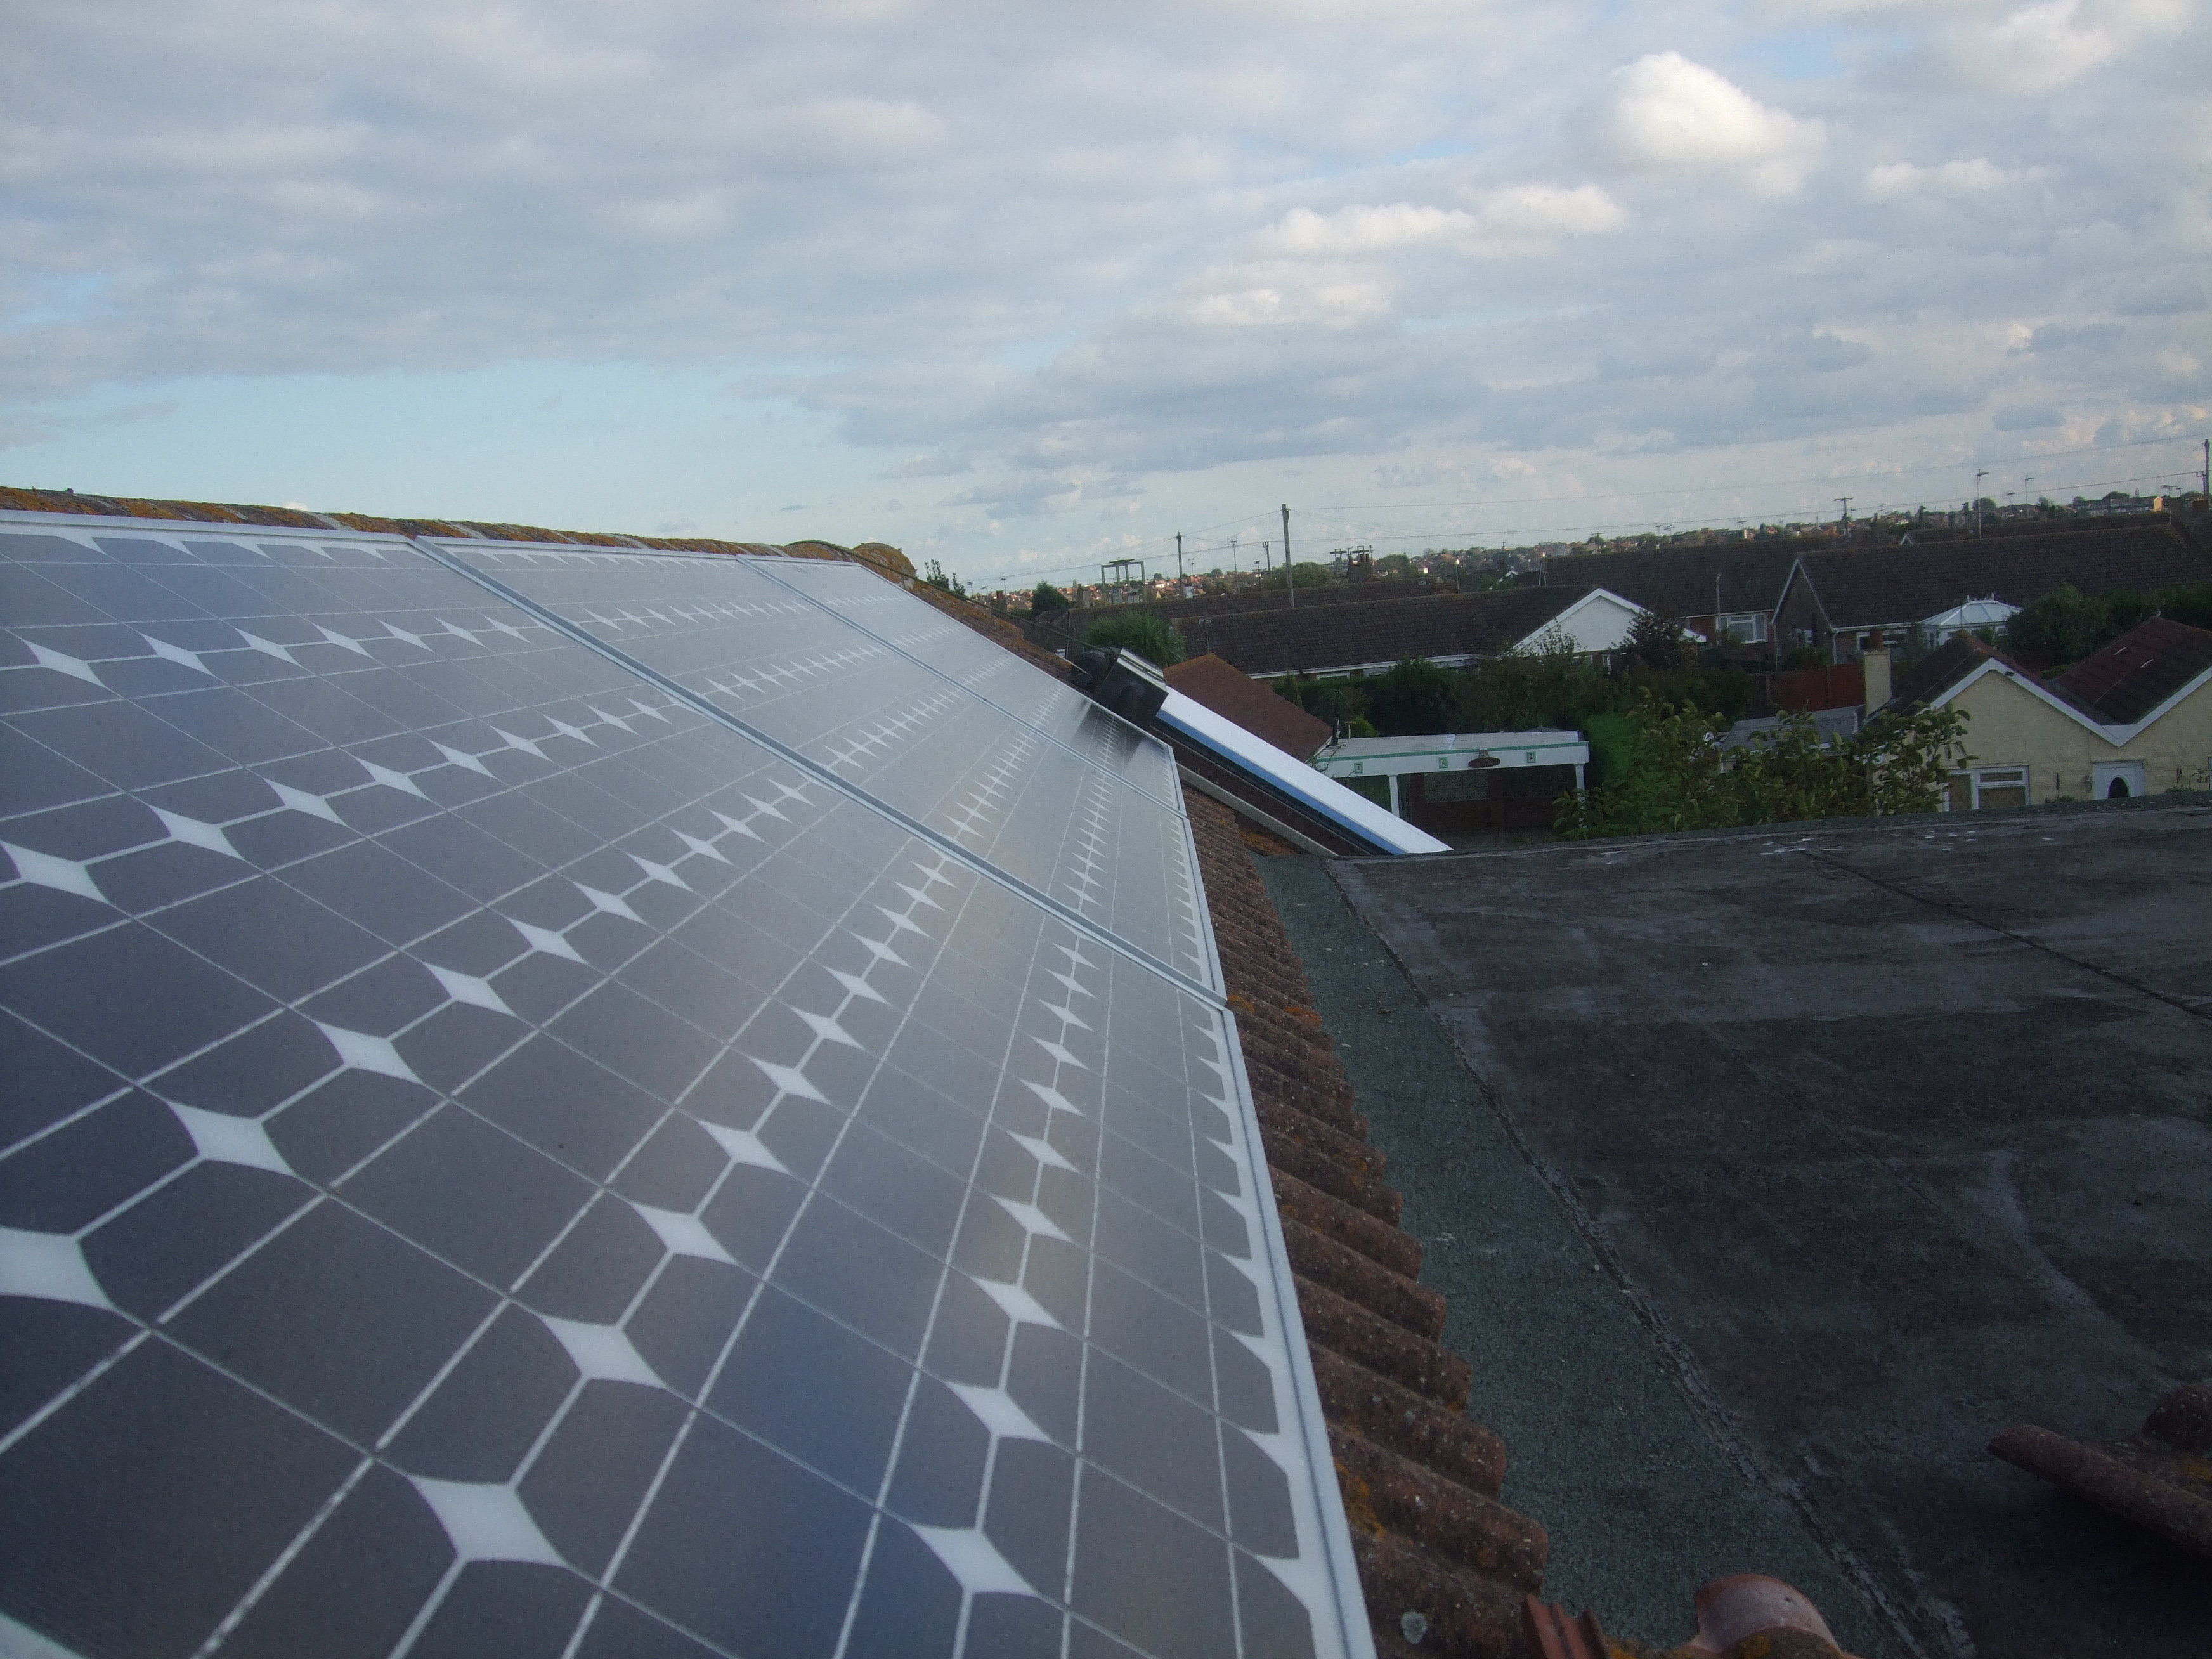 10 panel solar PV on roof